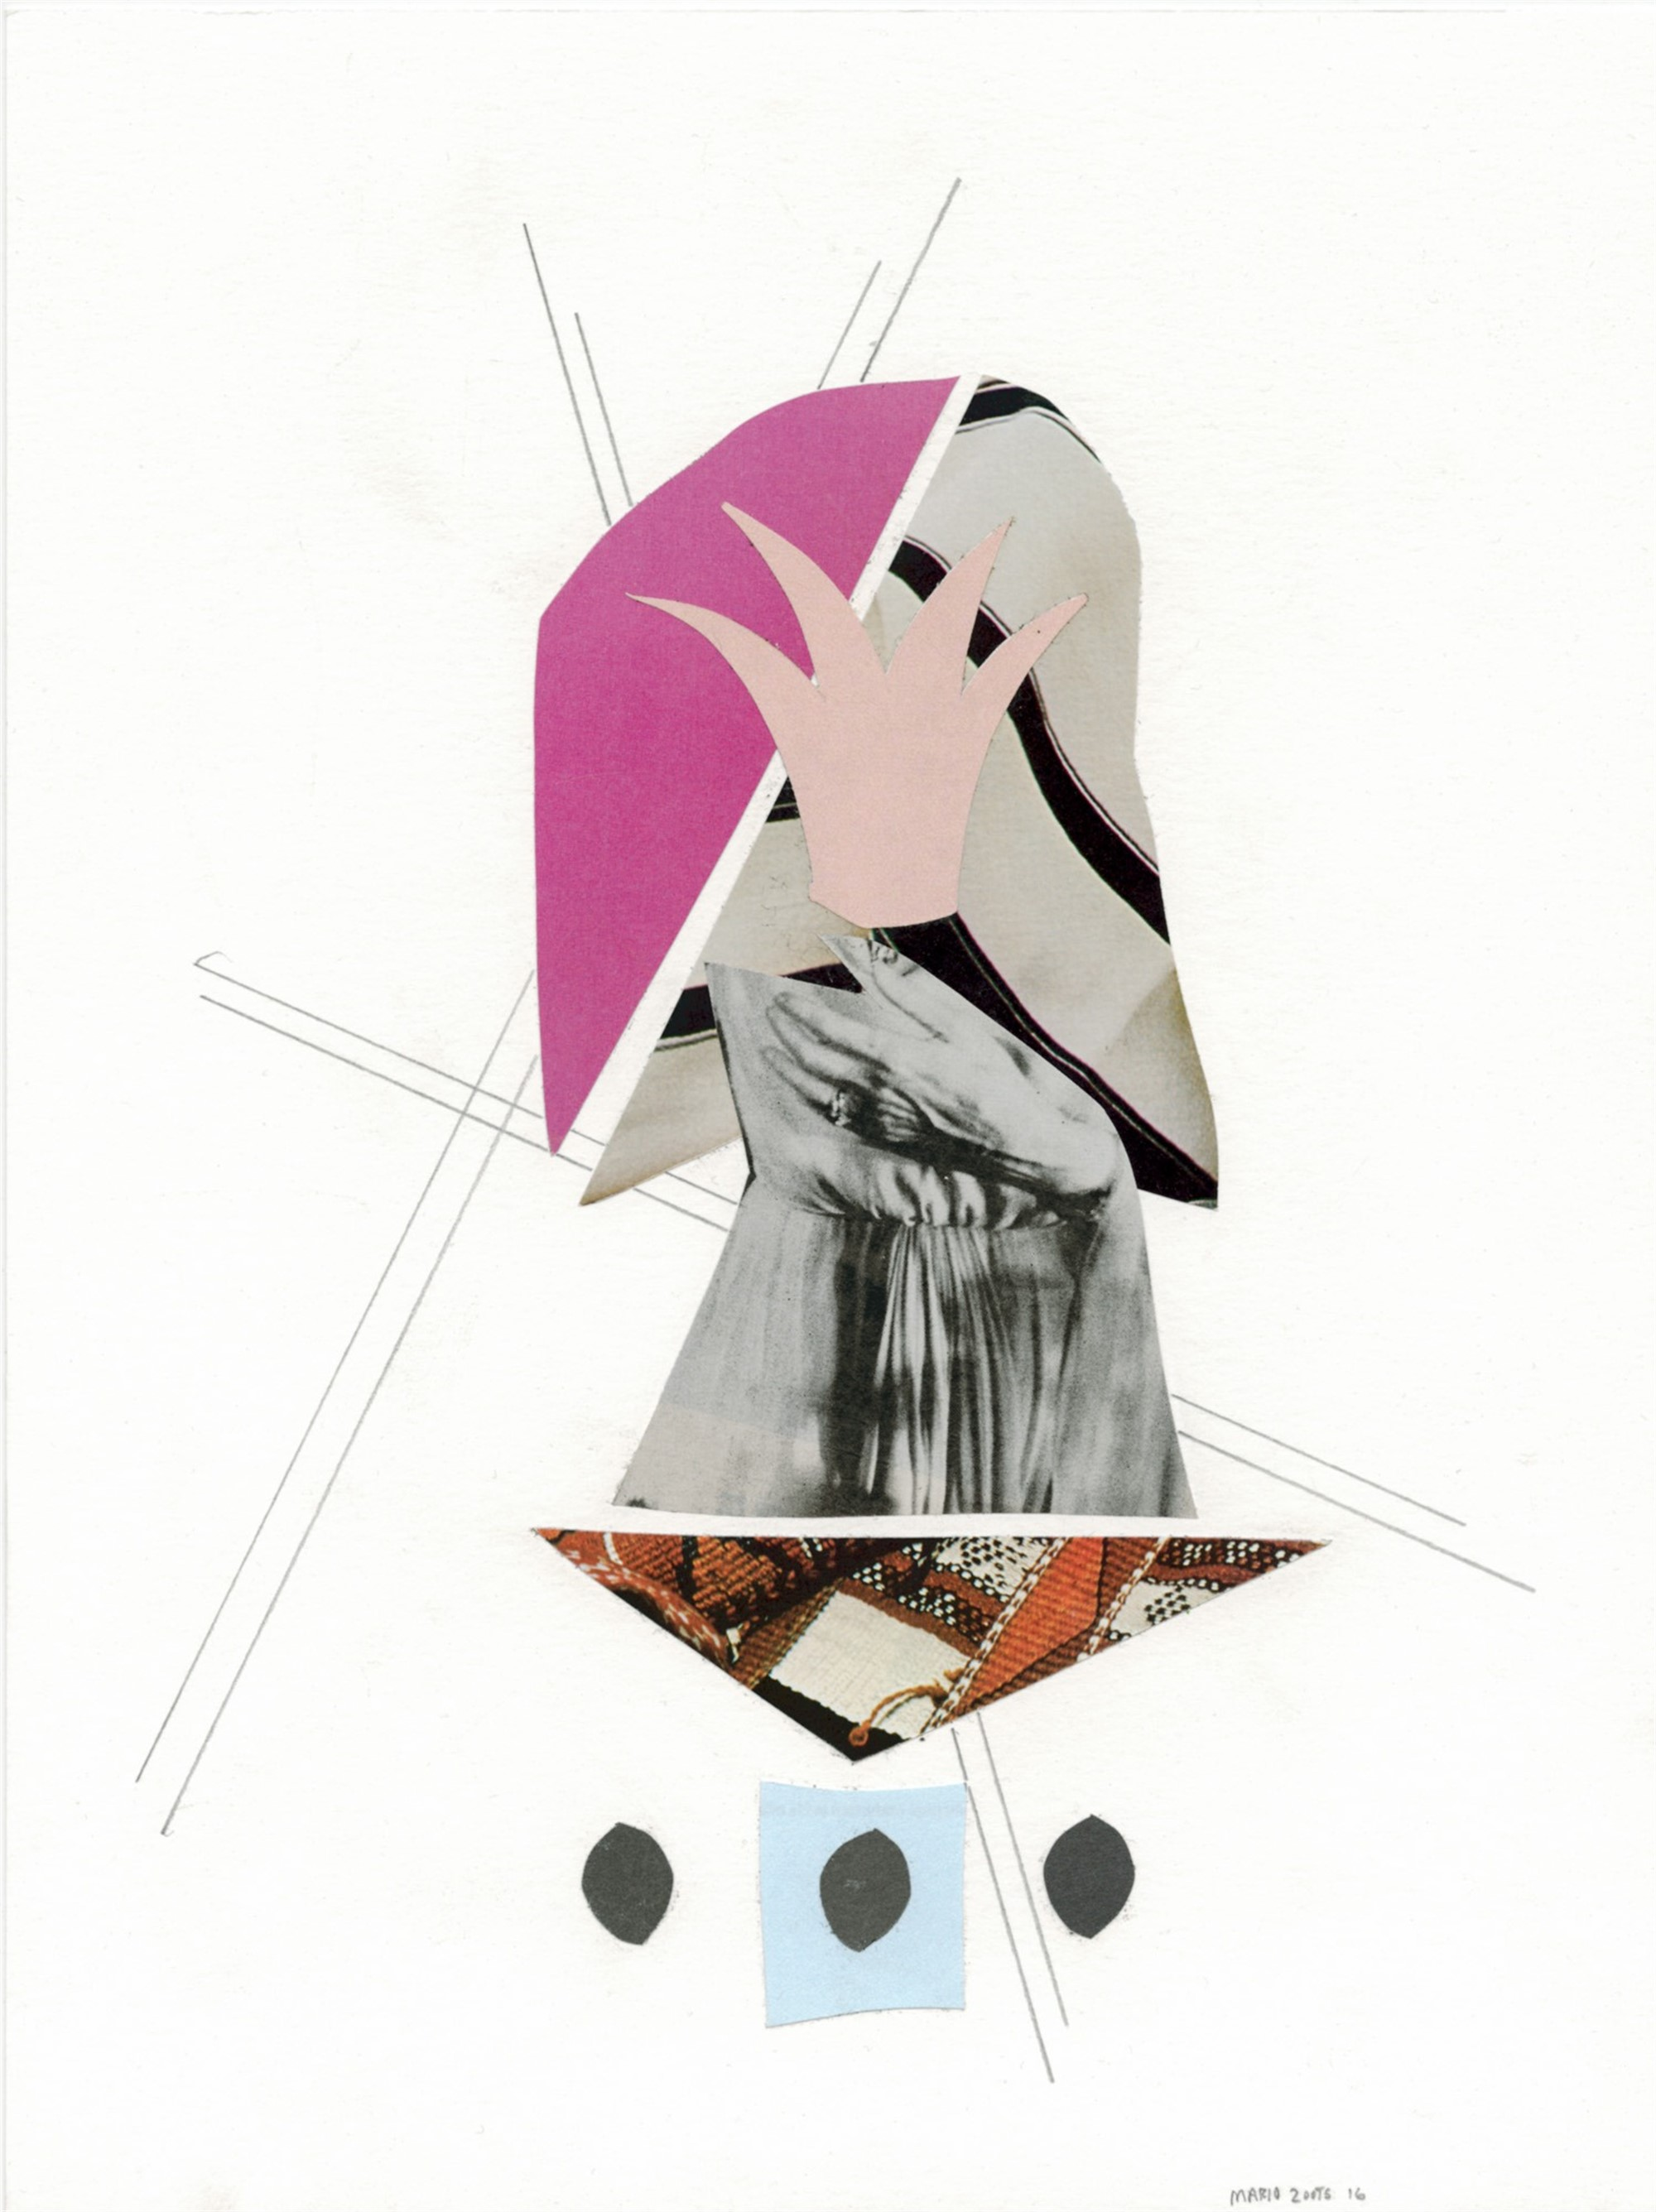 Deconstruction #4 by Mario Zoots